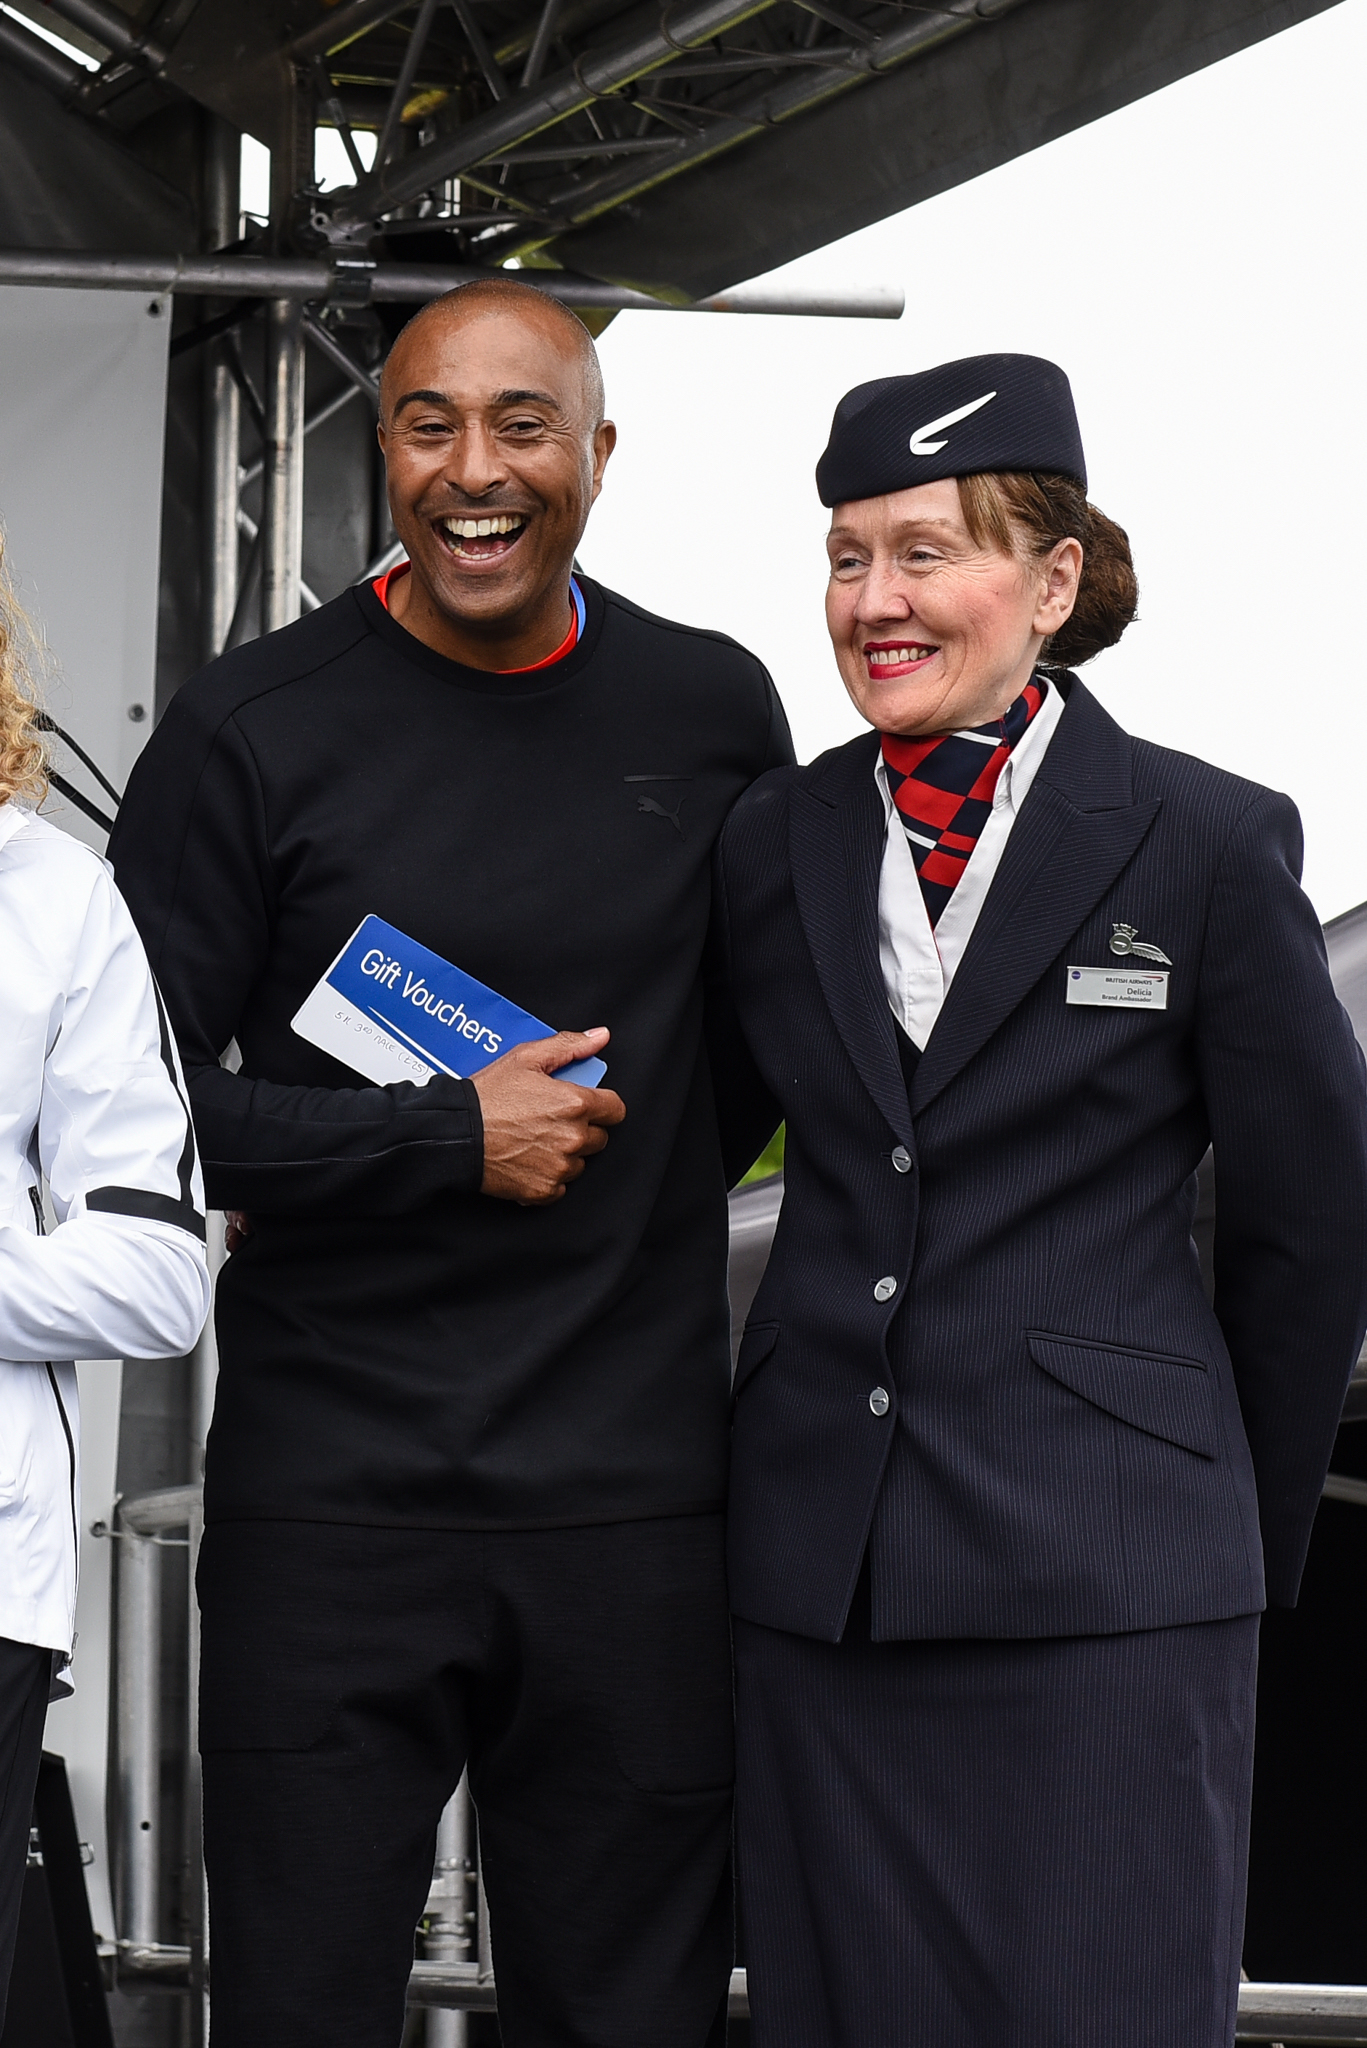 Colin Jackson Supports British Airways Run Gatwick